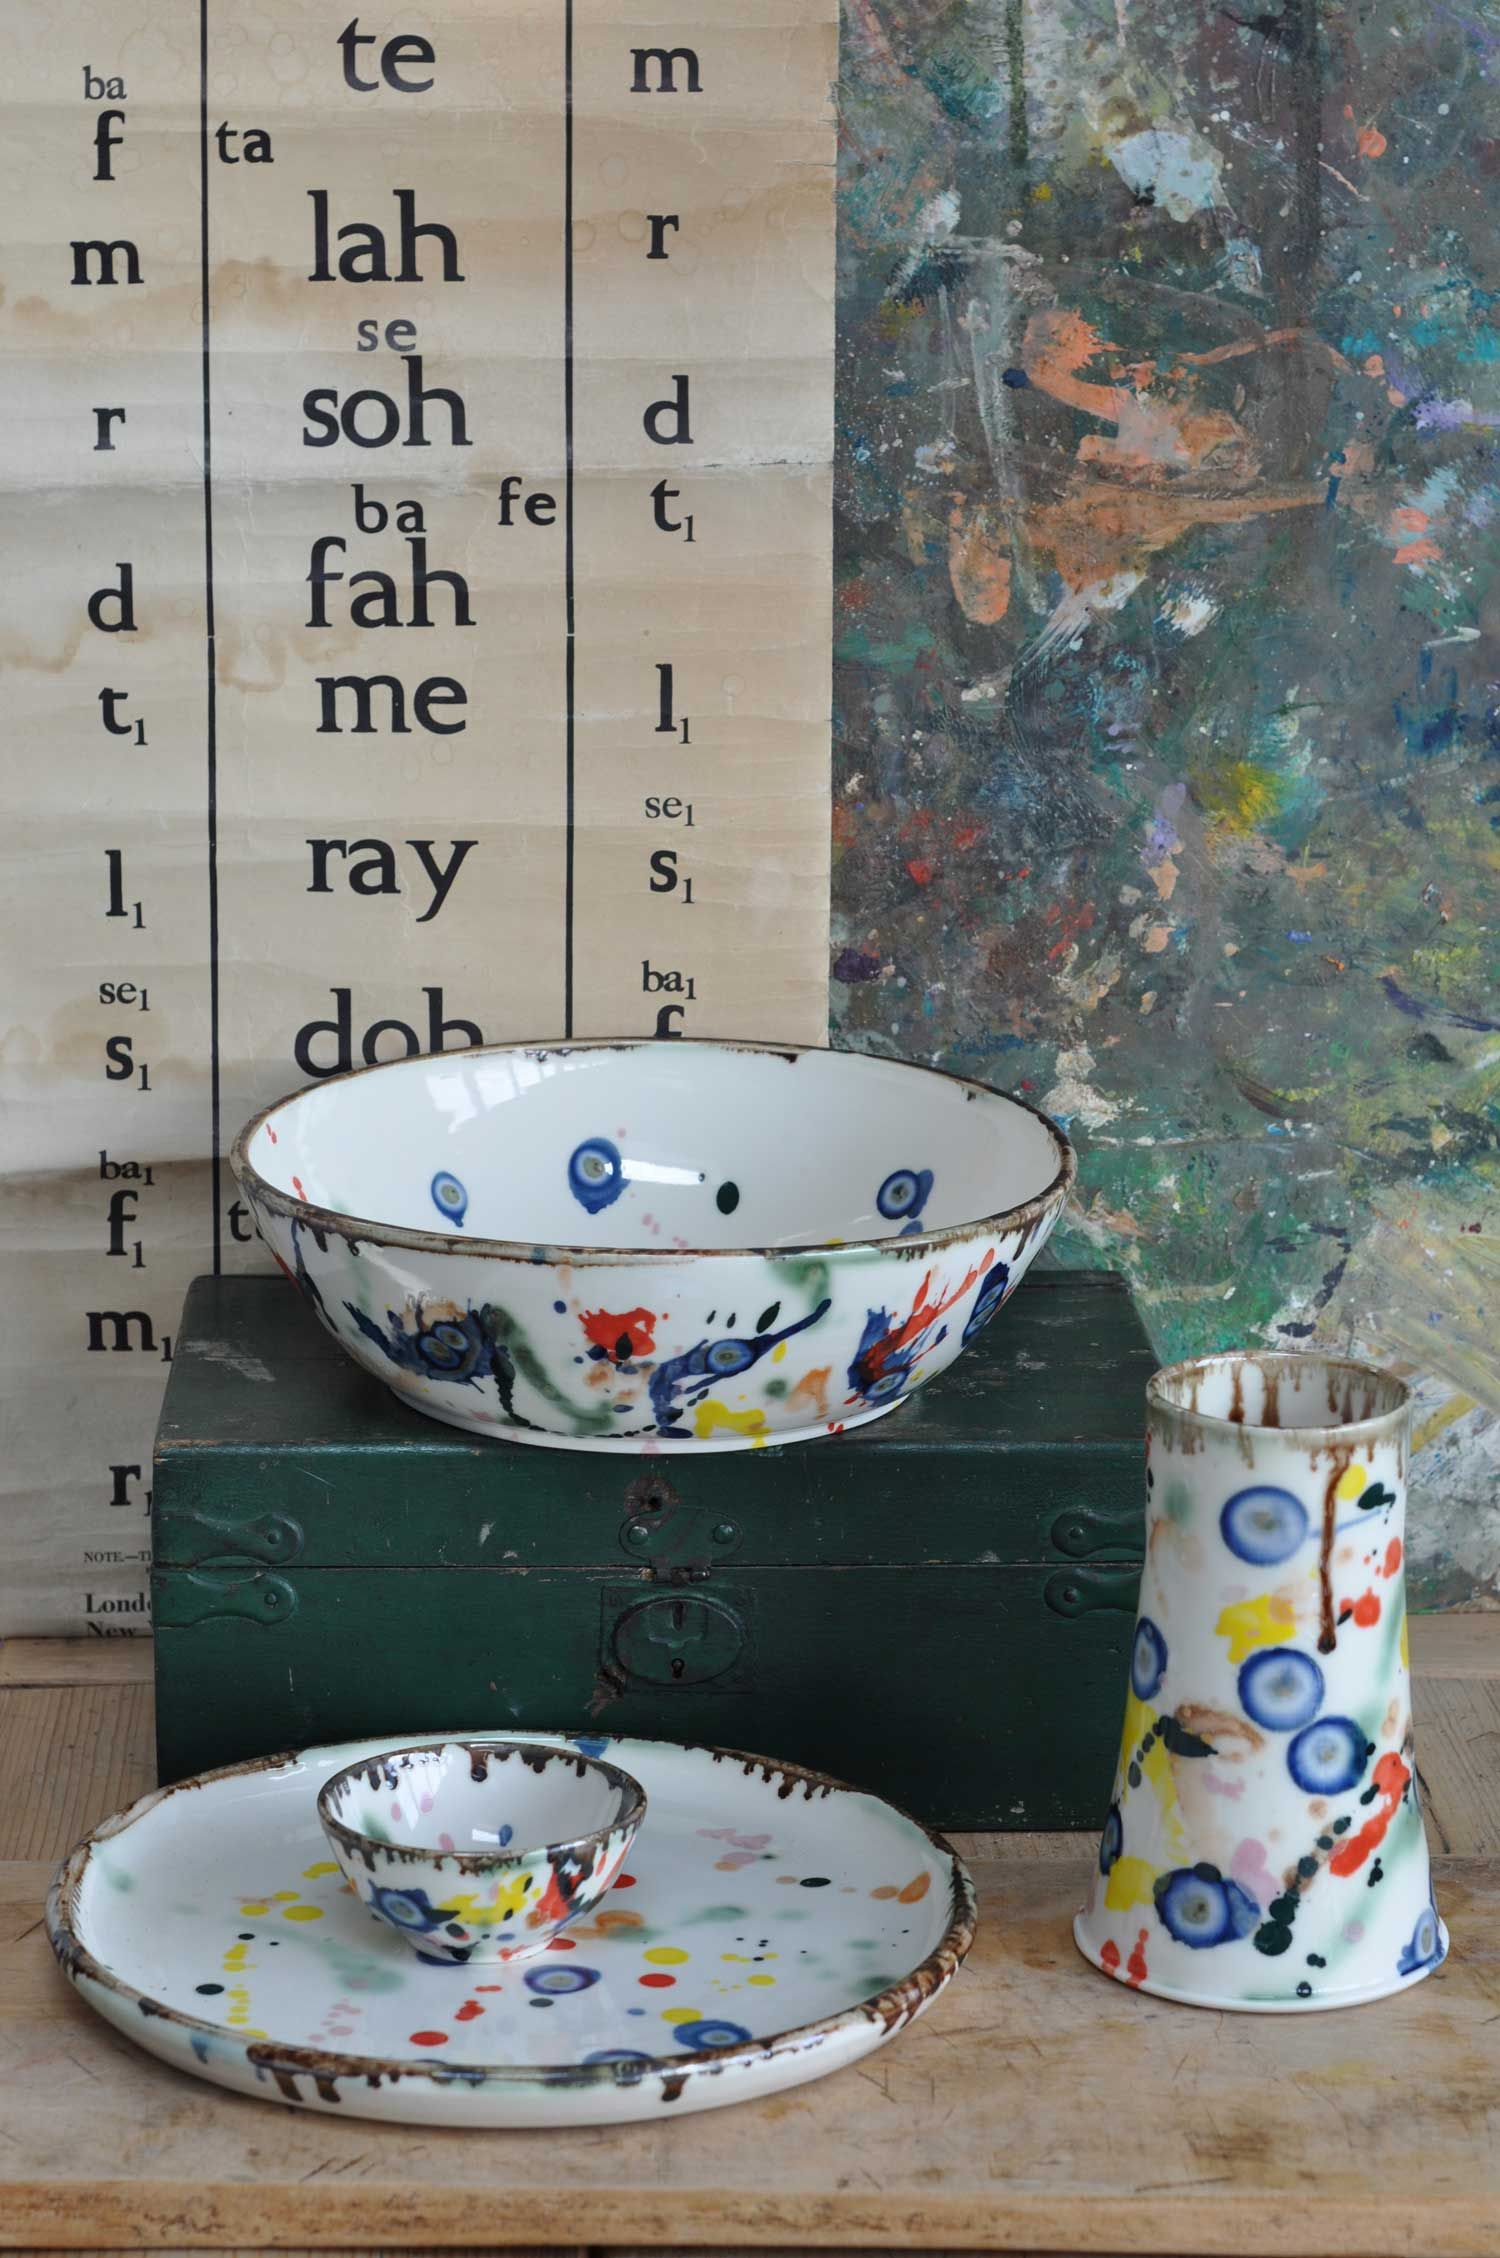 Porcelain Ceramic Pottery Collection By Mia Sarosi Porcelain Ceramics Ceramic Pottery Ceramics